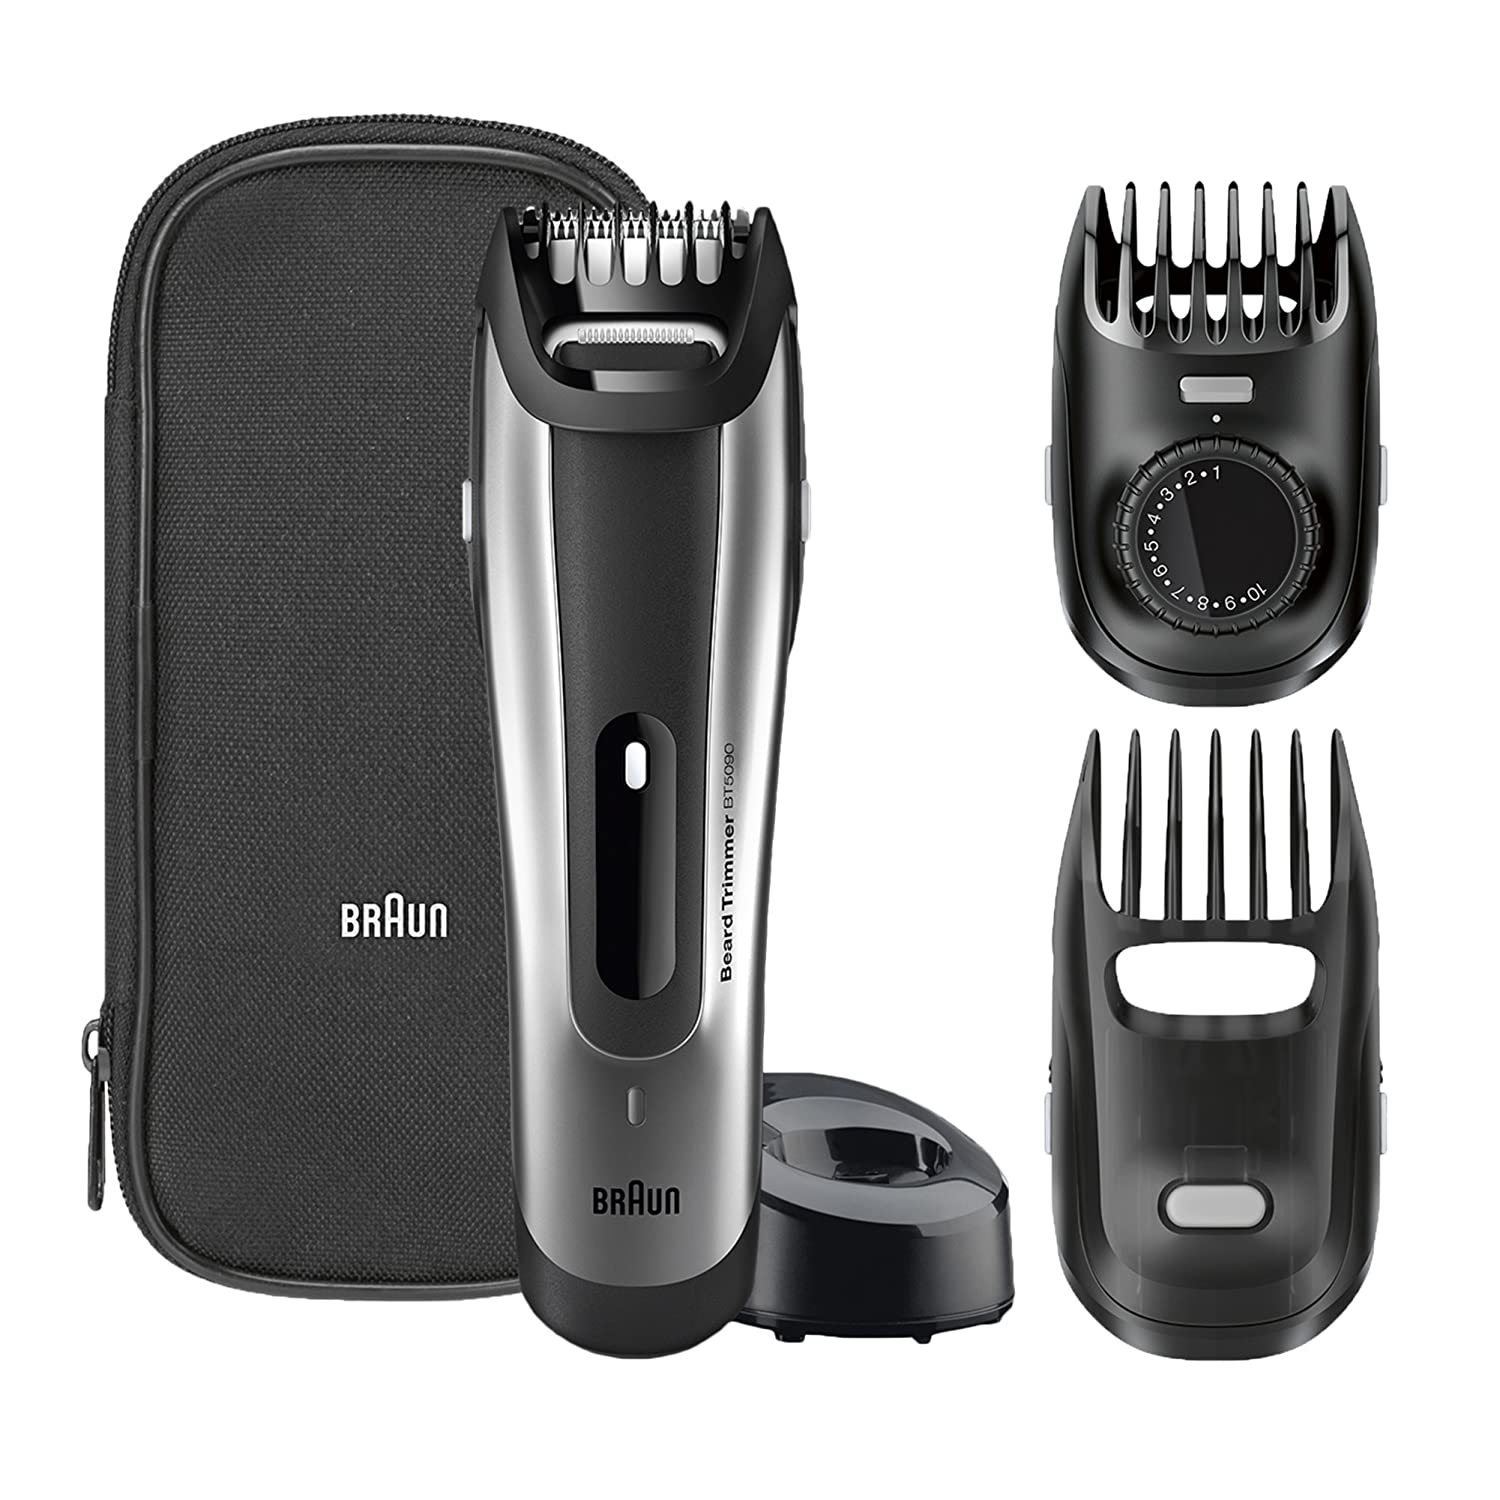 Braun BT5090 Beard Trimmer, Precision Facial Hair, Precision for the Beard Style, 0.5 mm Step Sizes Procter & Gamble 4210201130185